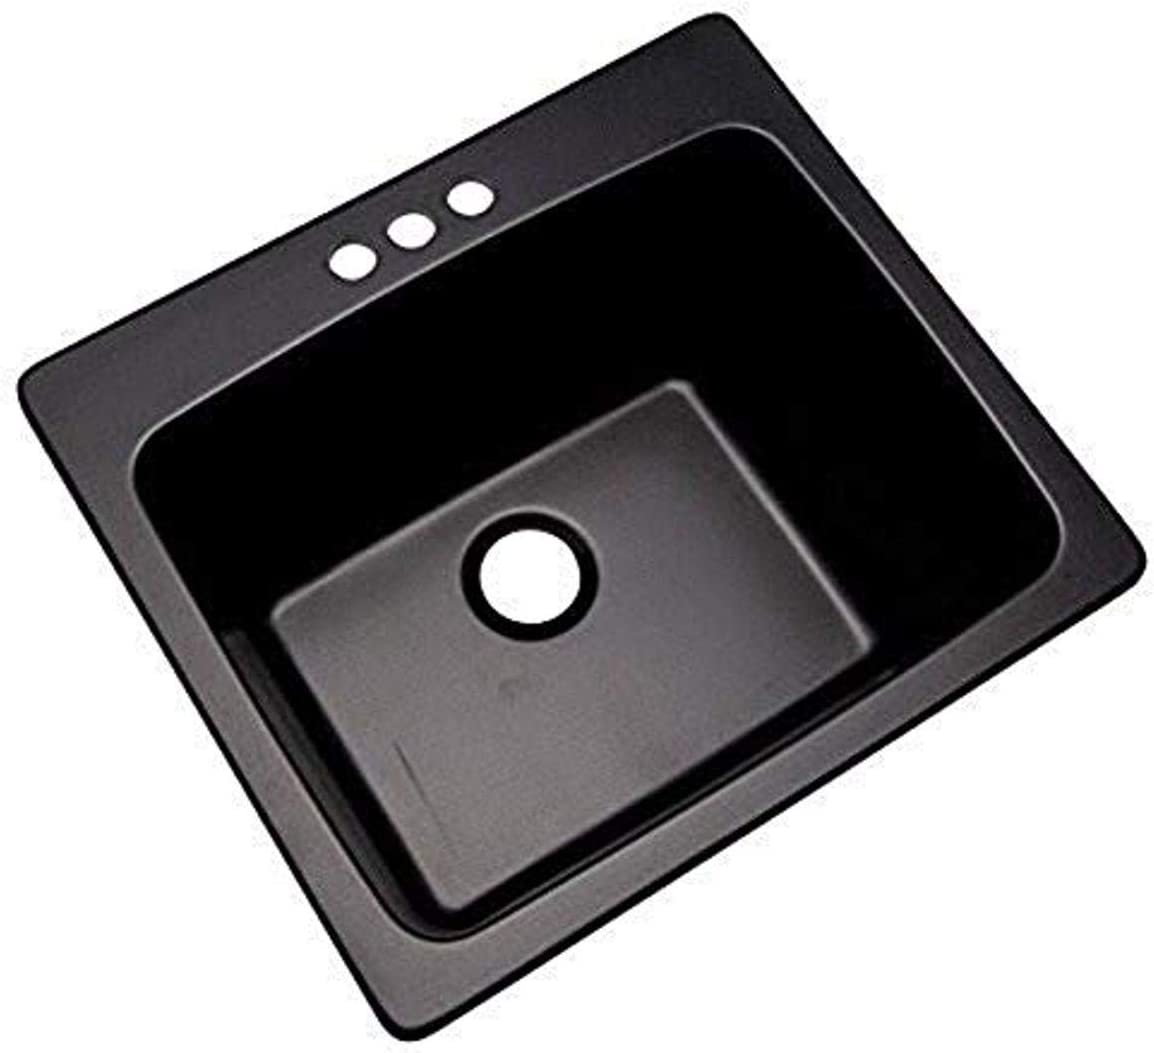 Thermocast 32399nsc Wakefield Composite Utility Sink With Three Holes 25 Inch Black Natural Stone Amazon Com